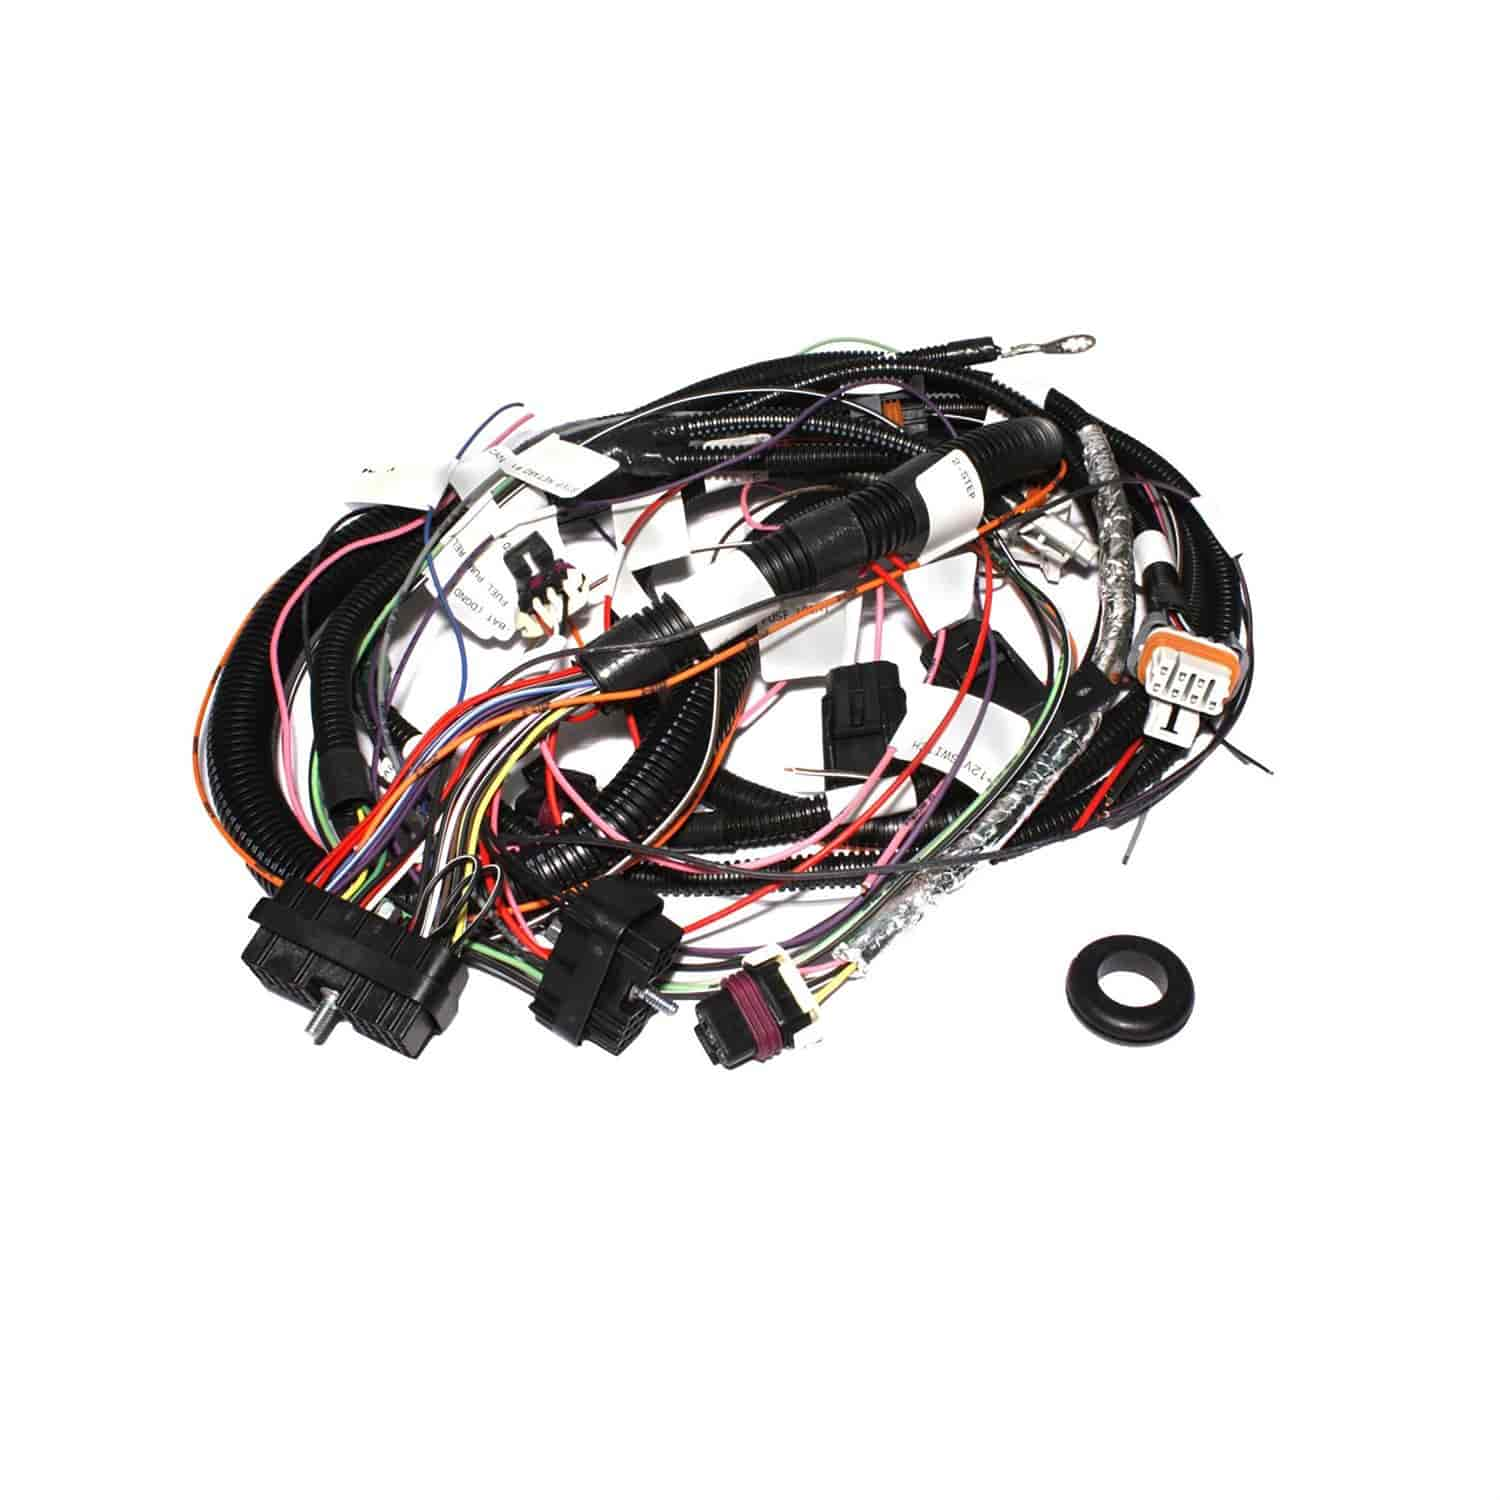 244 301972 fast 301972 xim fuel injection wiring harness for ls1 jegs Wiring Diagrams for Chevy LS Engines at gsmportal.co